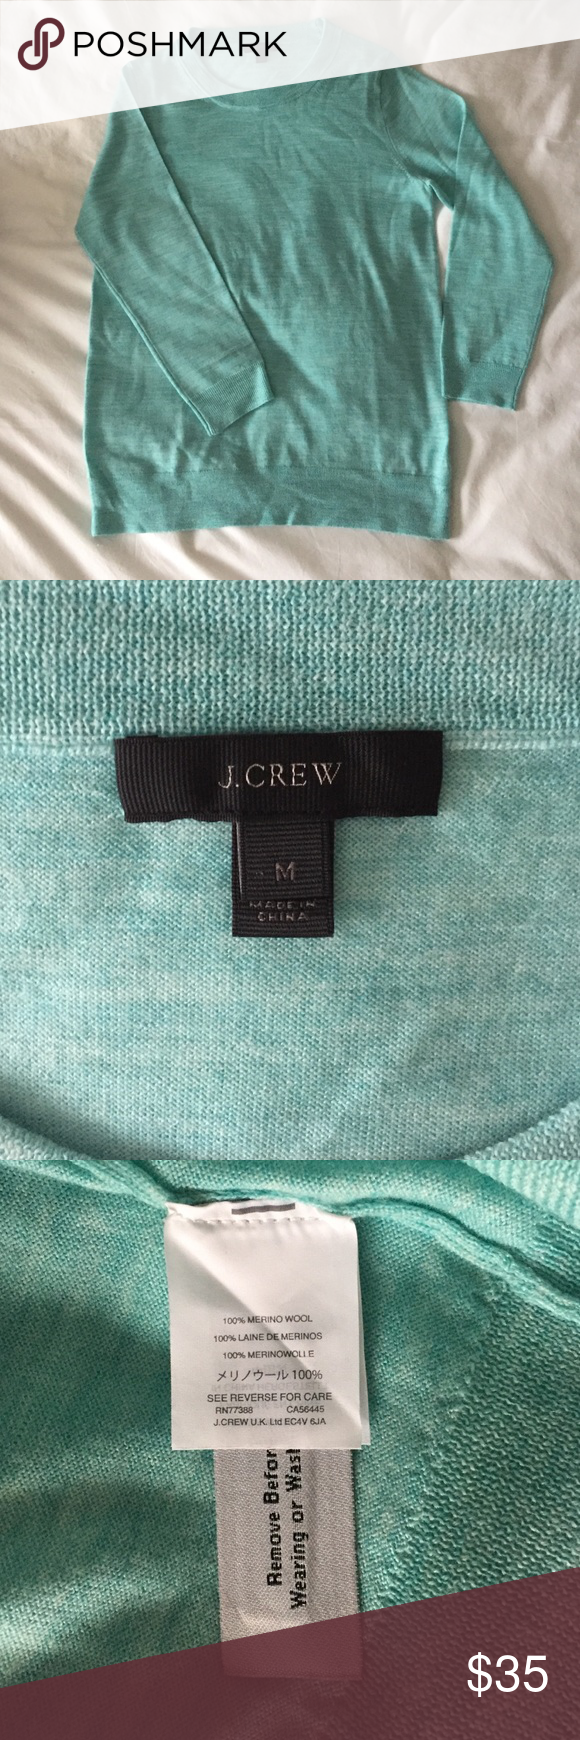 J. Crew Tippi Sweater 100% Merino Wool Great condition!!  Light green heathered tippi sweater, worn twice.  100% Merino Wool.  Pretty color!! J. Crew Sweaters Crew & Scoop Necks